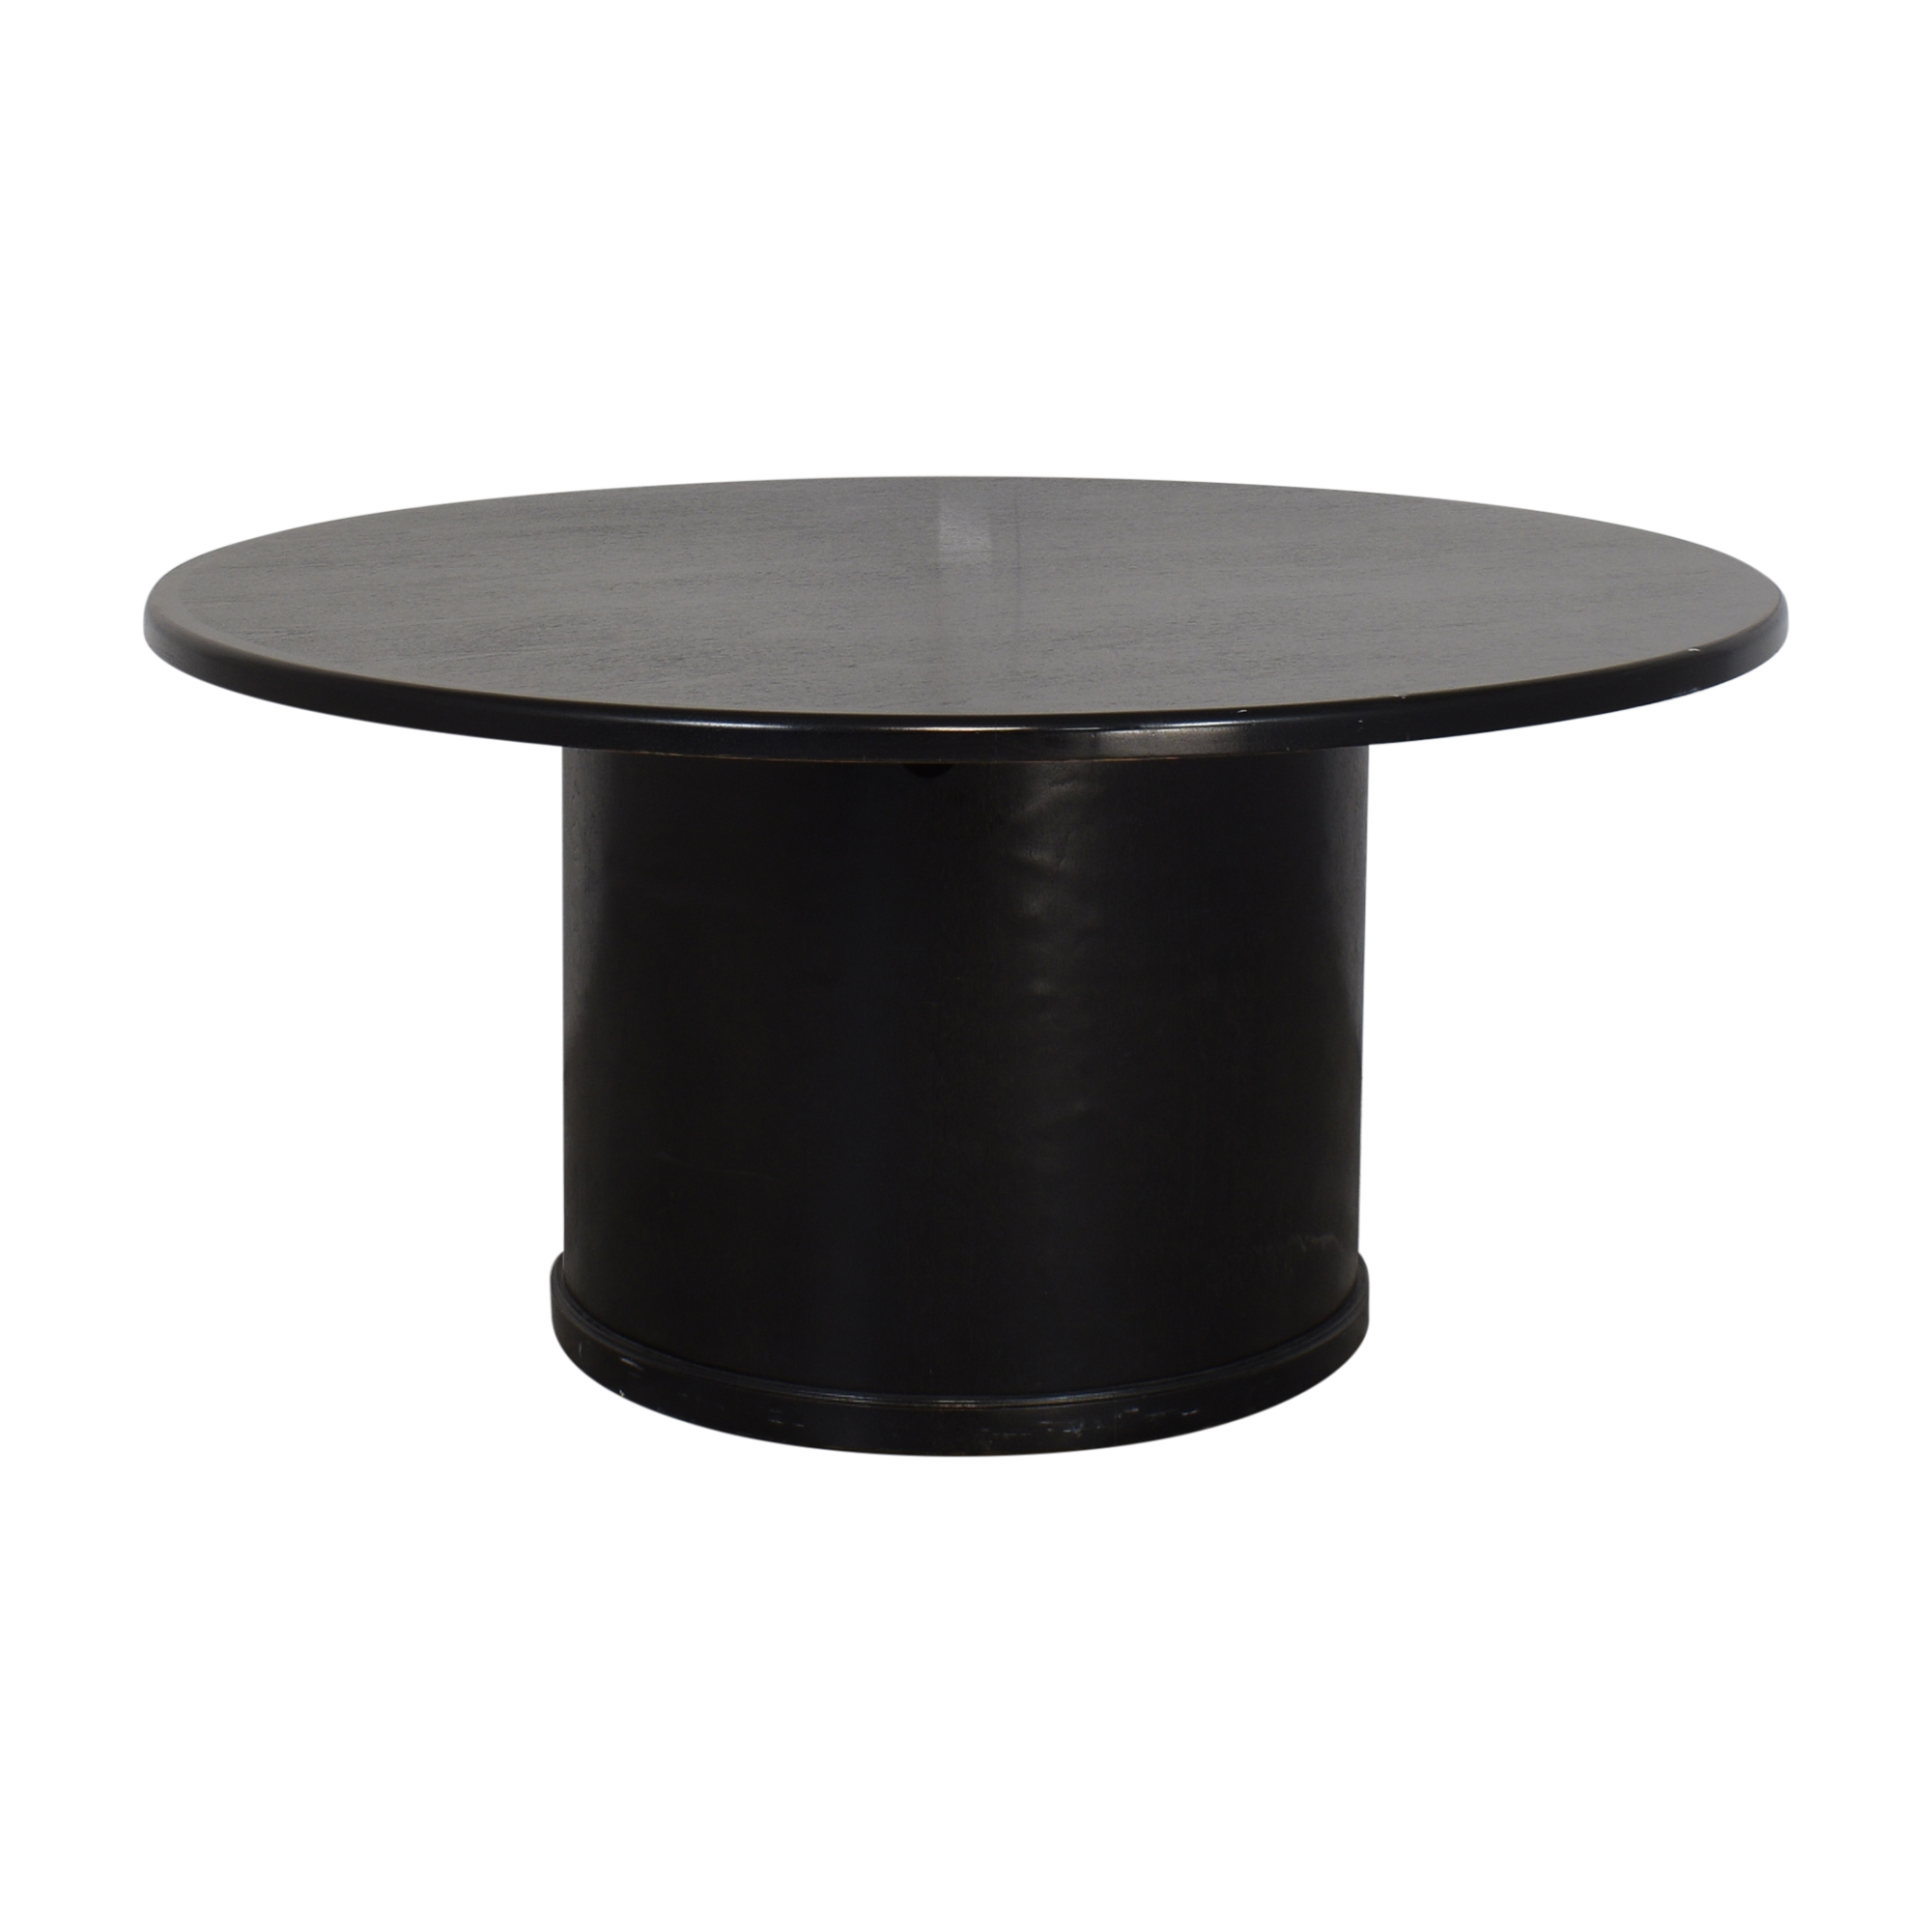 Steelcase Steelcase Round Table pa